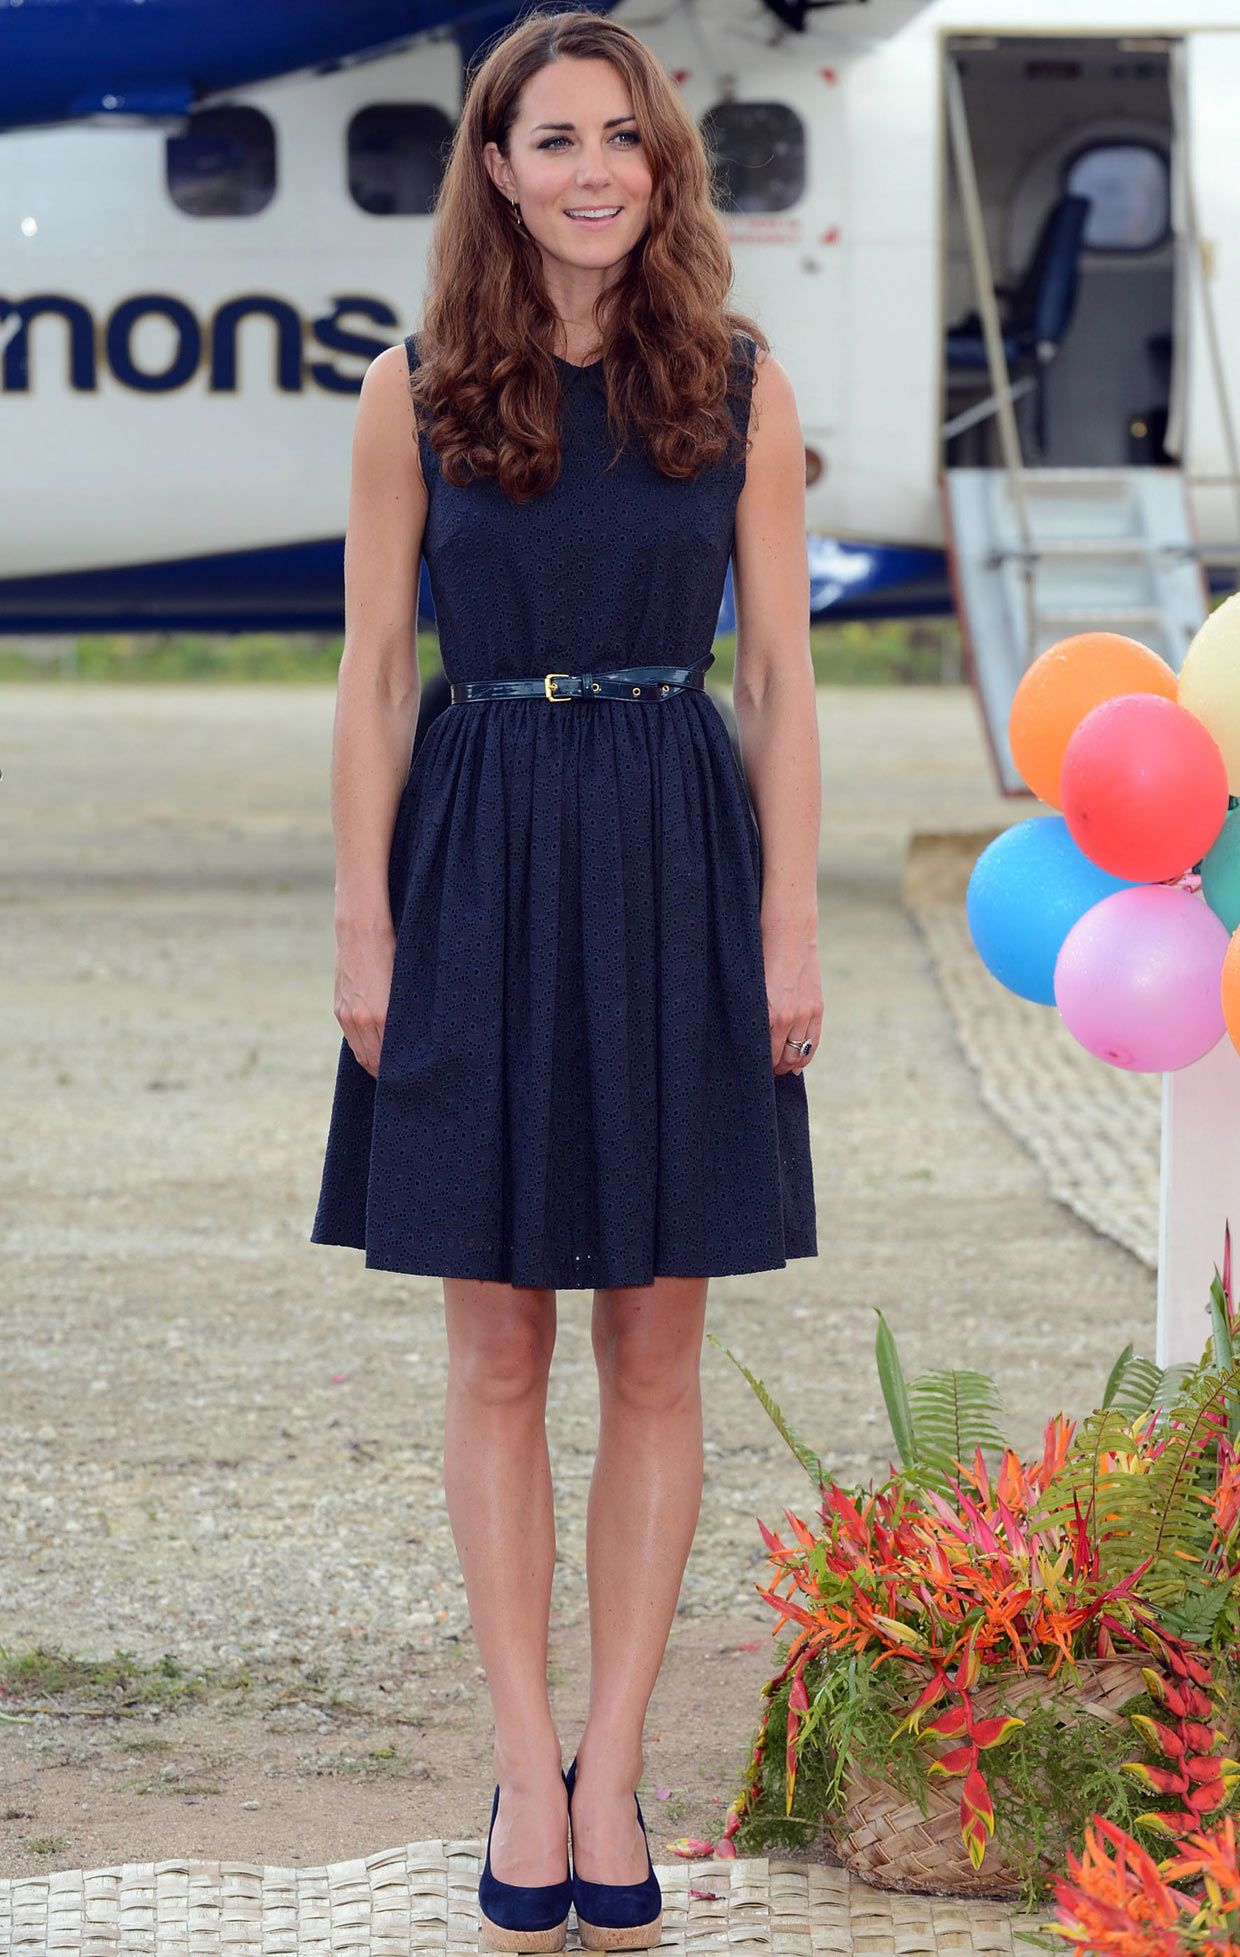 d75f41daf3657 11 Times Kate Middleton Looked Perfectly Cool on the Hottest Summer Days